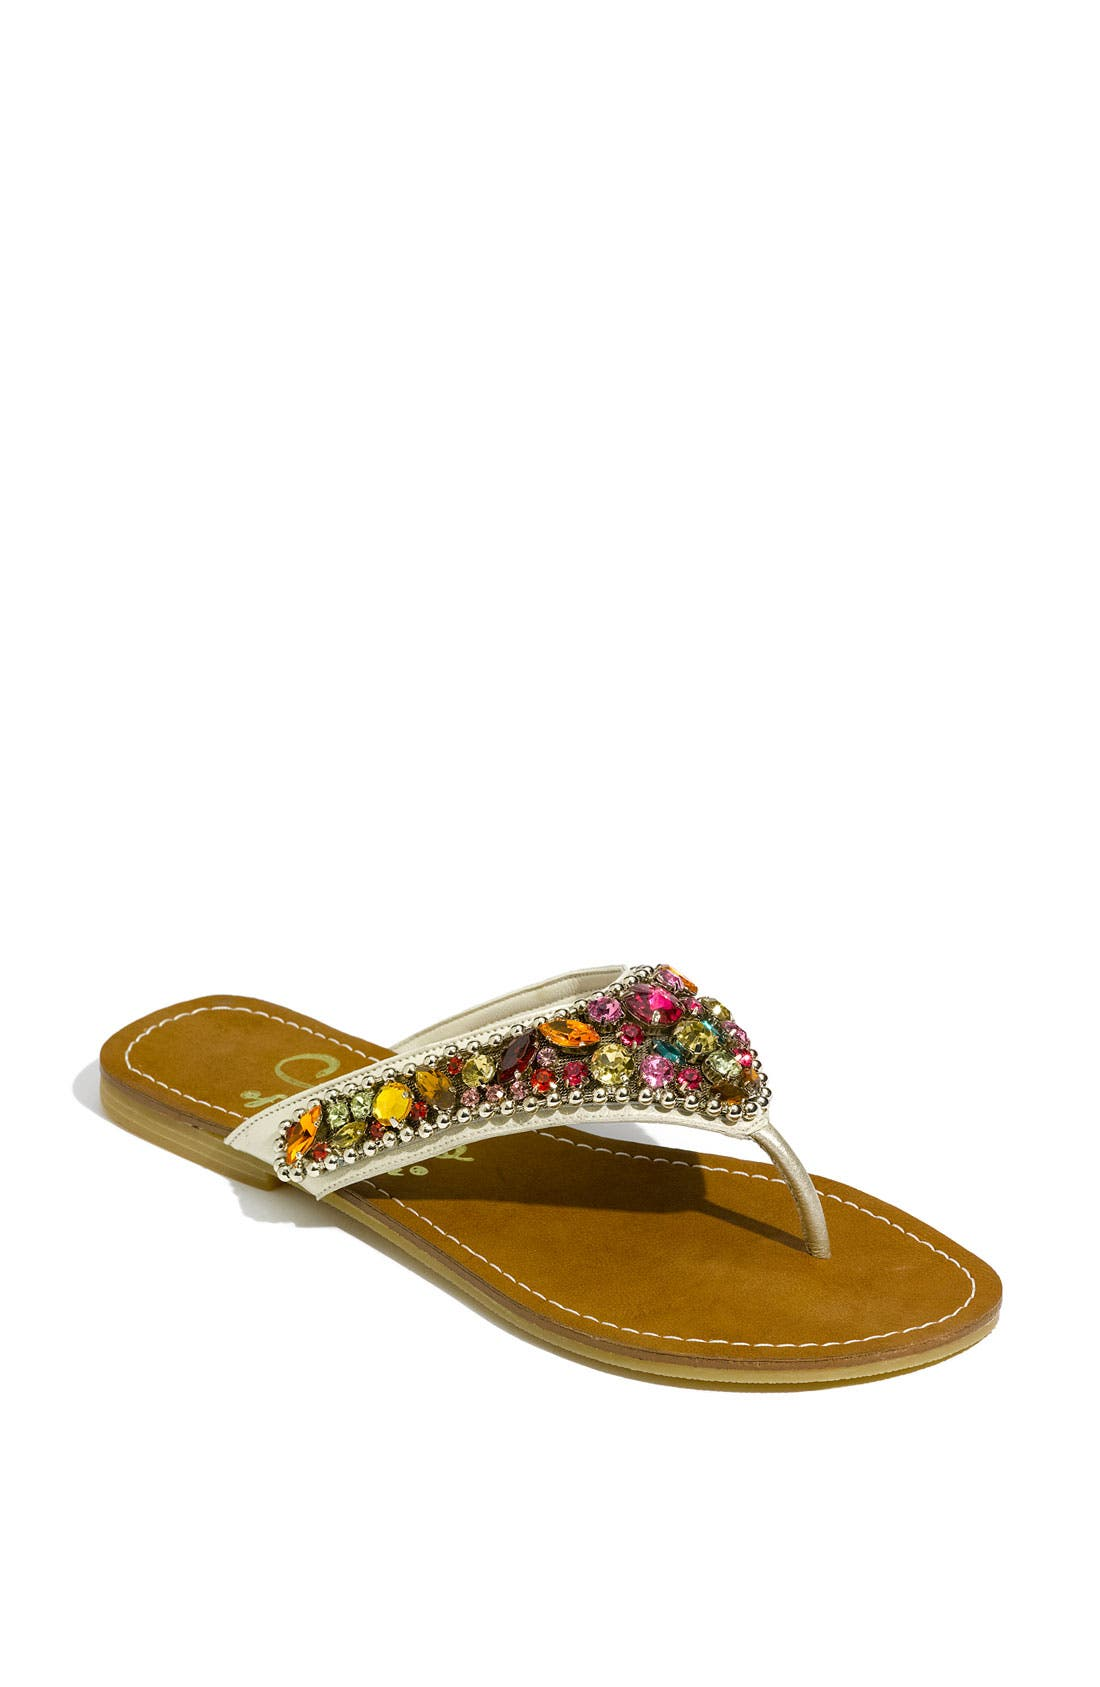 Alternate Image 1 Selected - Callisto 'Jellie' Sandal